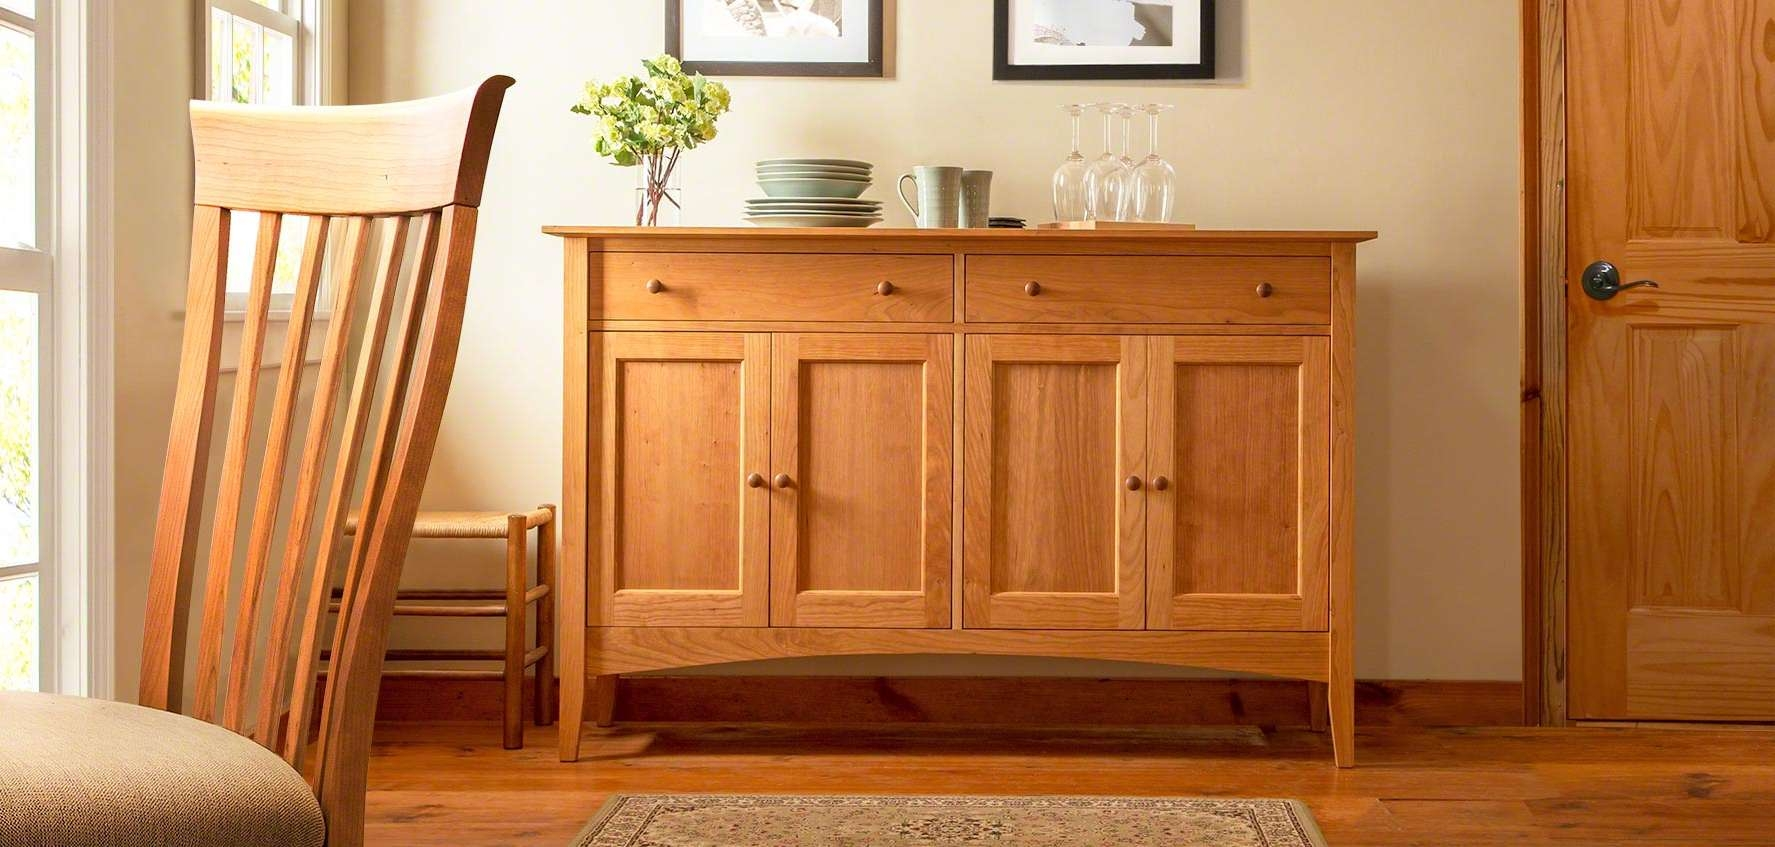 Solid Wood Sideboards, Buffets, & Hutches – Vermont Woods Studios Throughout Wood Sideboards (View 18 of 20)